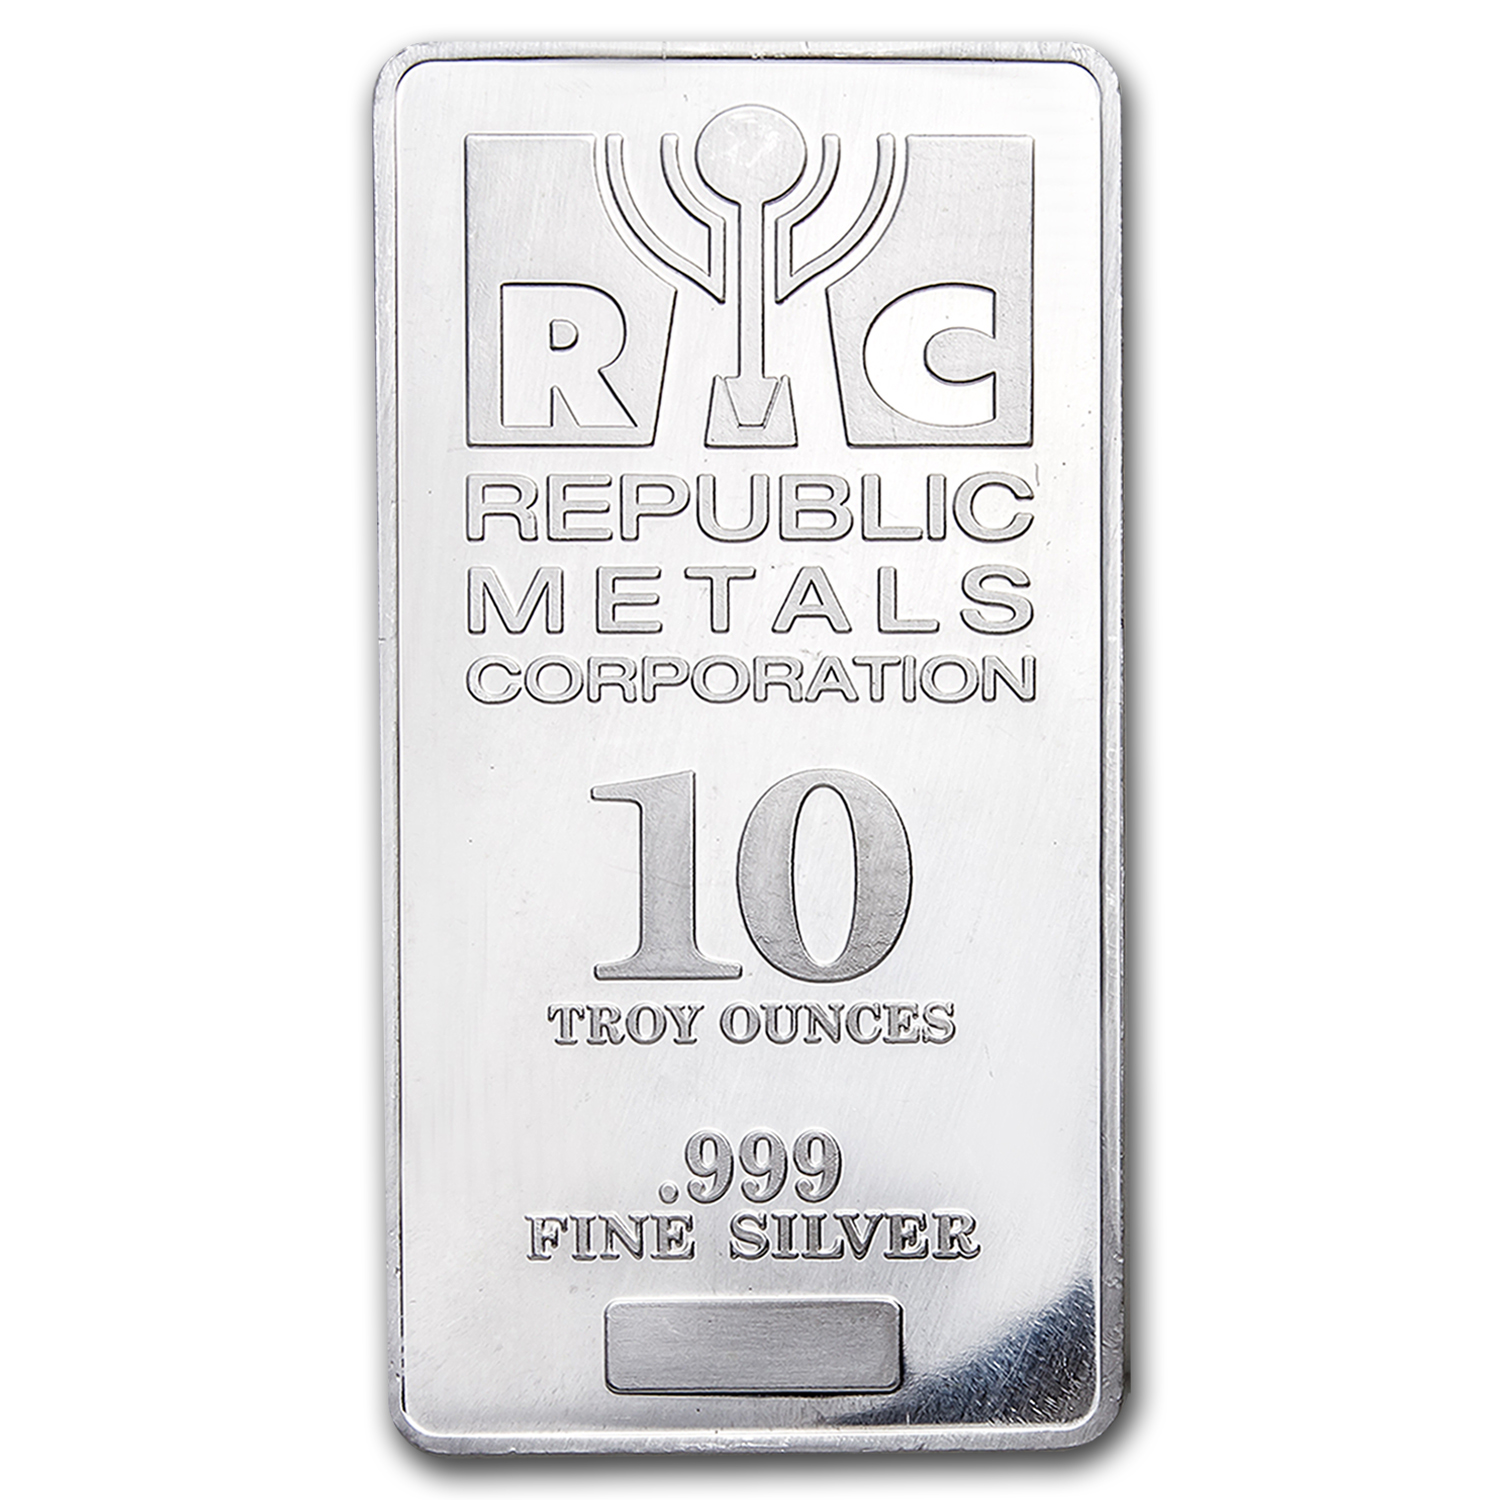 10 oz Silver Bar - Republic Metals Corp. (RMC)